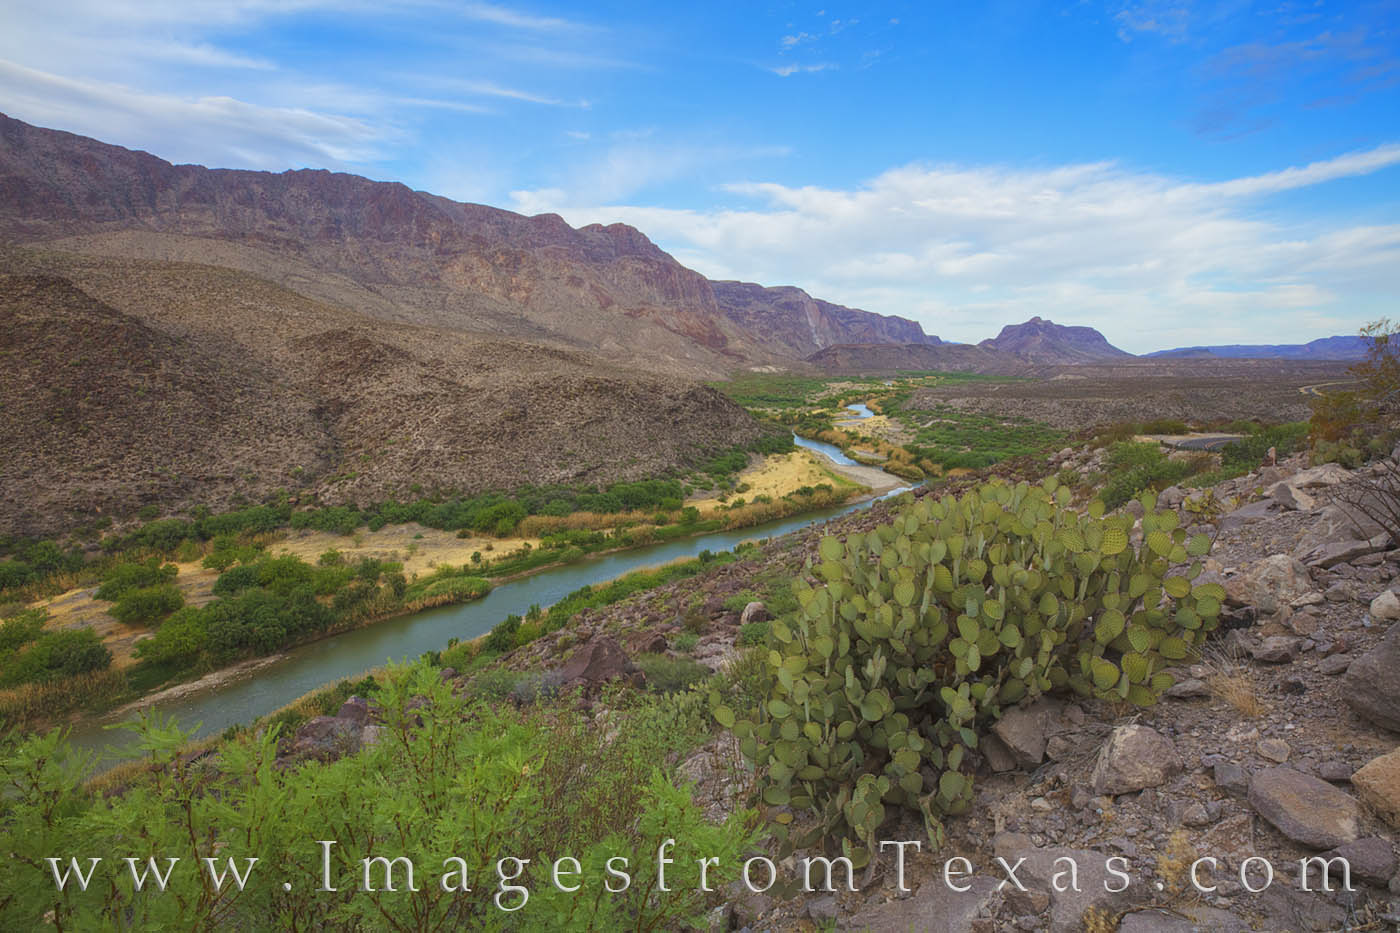 big bend ranch, rio grande, green, west texas, bbrsp, mexico, border, FM 170, photo